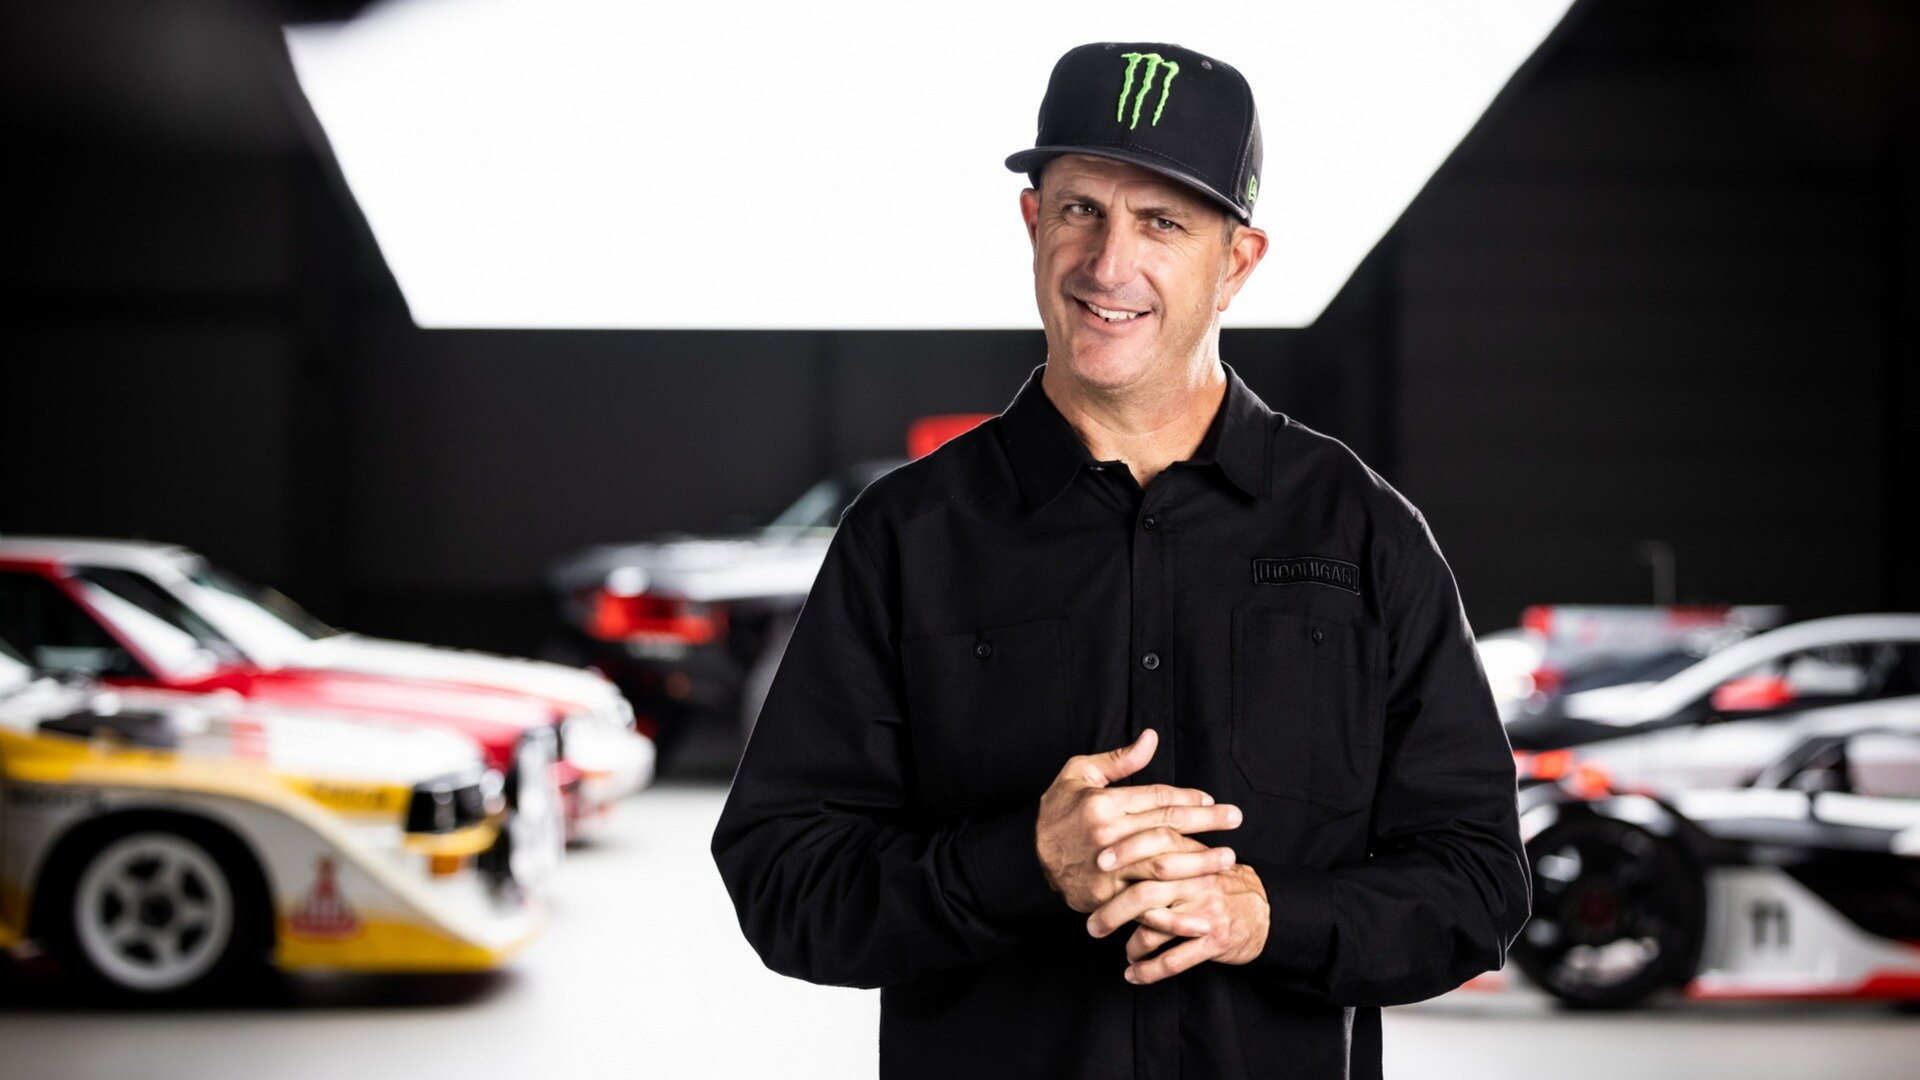 Racing driver and media celebrity Ken Block has officially become a part of the Audi team following his breakup with Ford. Here is a video posted on the company's official website along with some details of the deal.